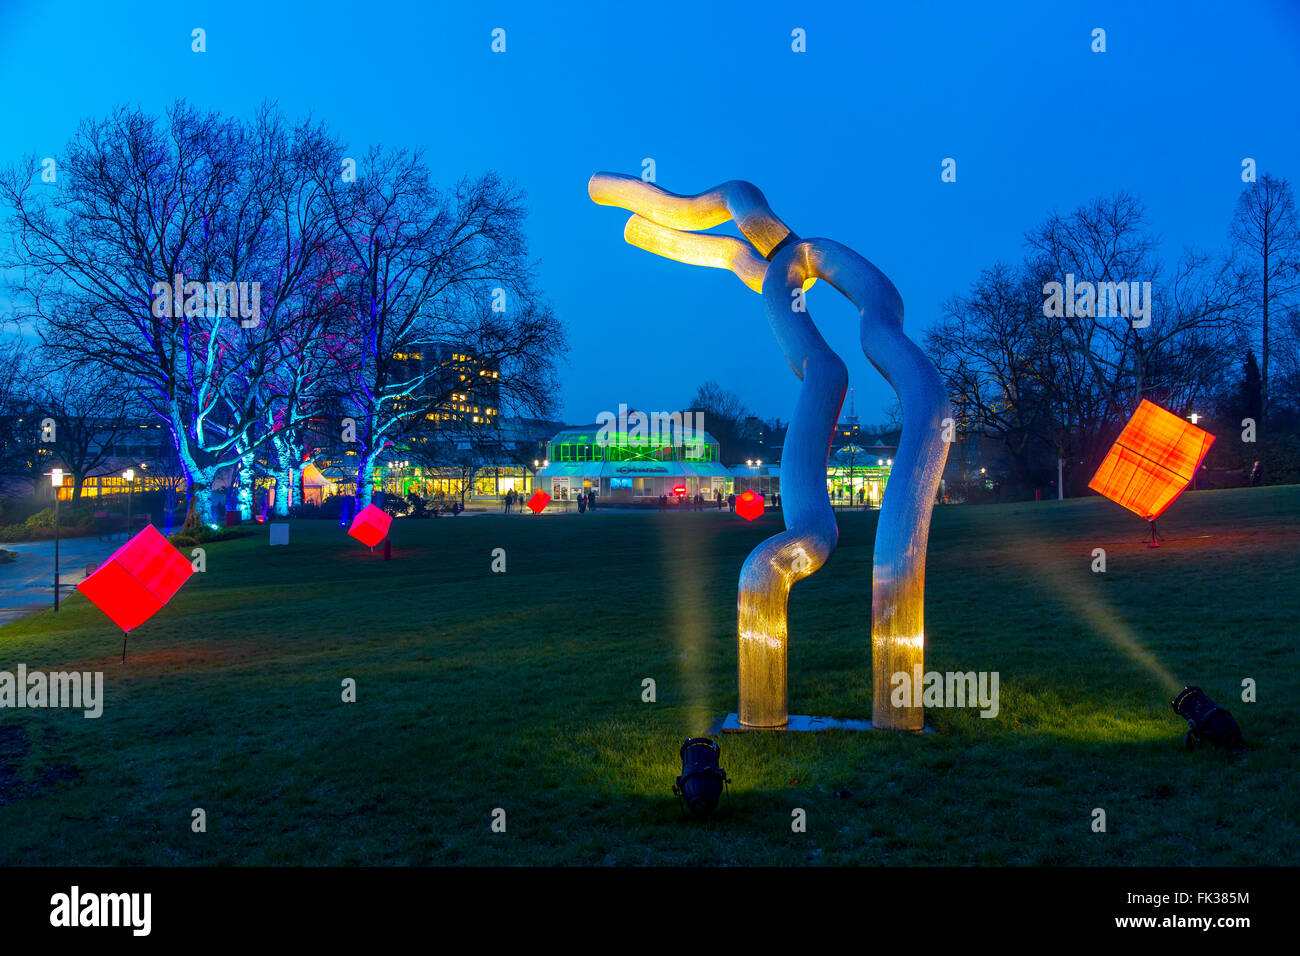 Park Leuchten, Park Illumination, in the Gruga Park, a public park in Essen, Germany, annual light show in the park - Stock Image